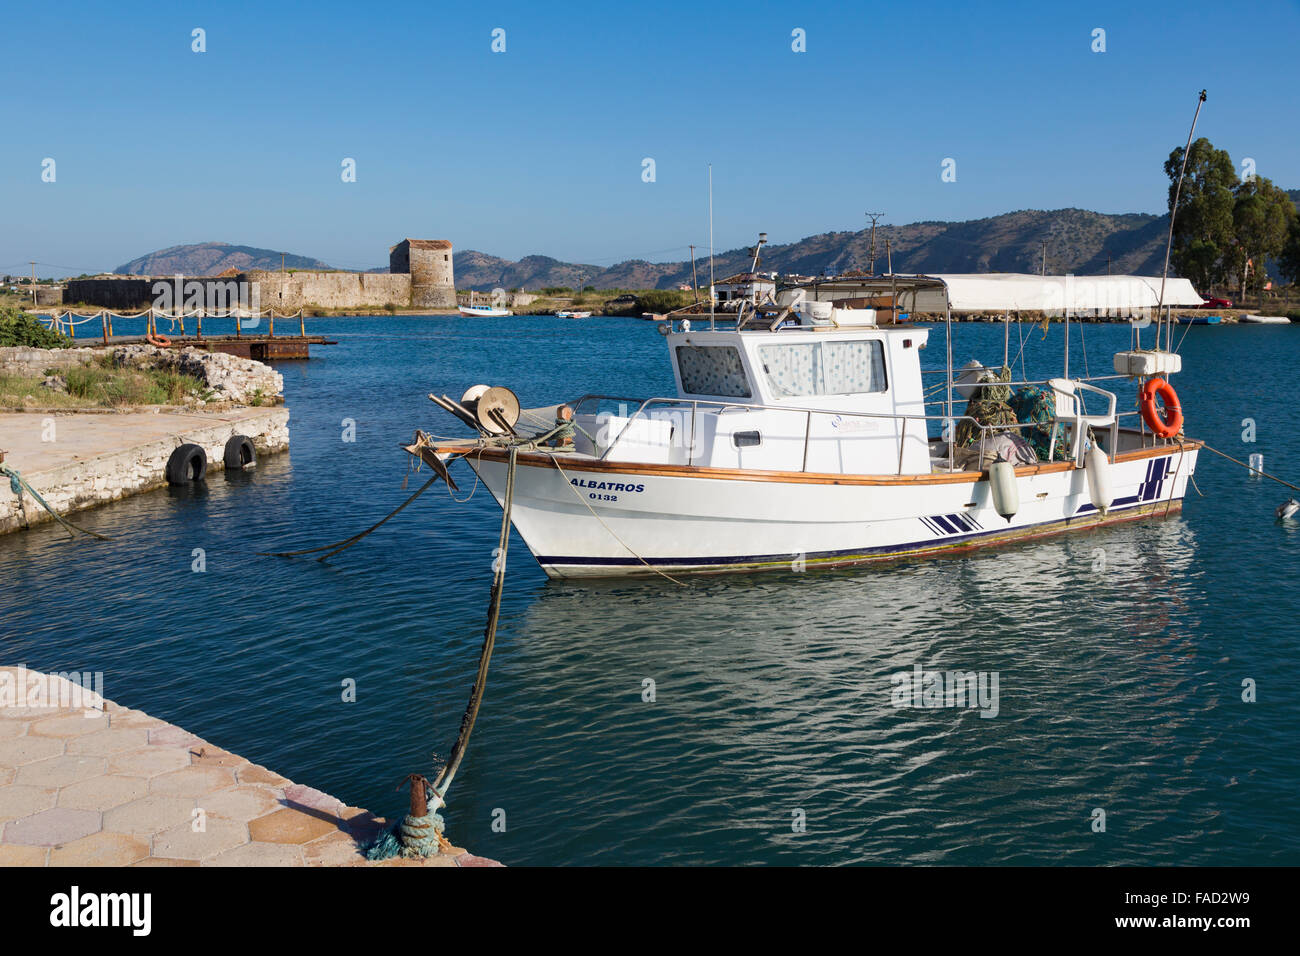 Butrint, Albania.  Fishing boat moored in the Vivari Channel front of the archaeological site. - Stock Image